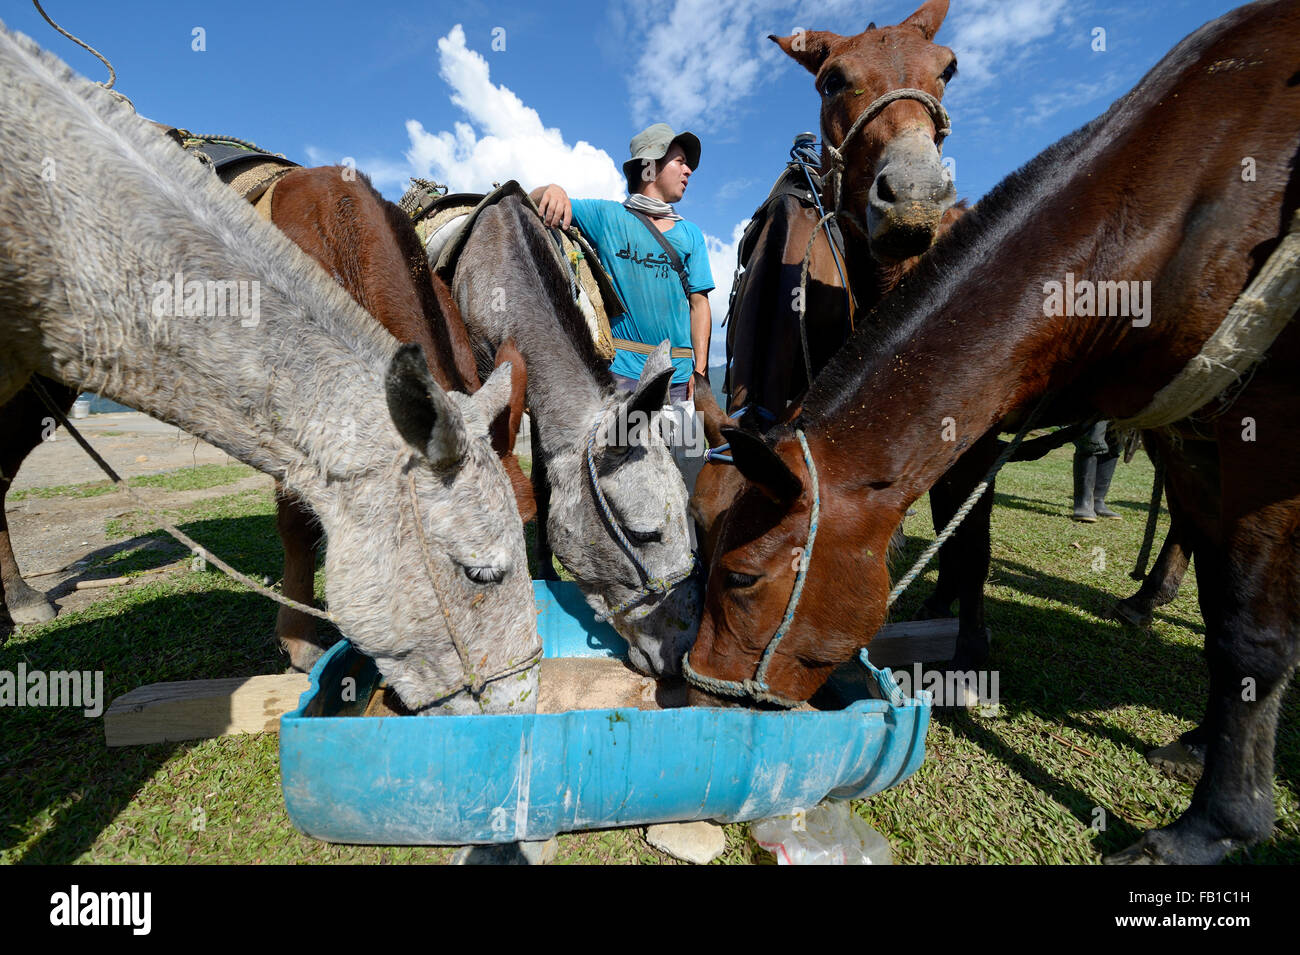 Mules at trough, village of San Francisco, Antioquia Department, Colombia - Stock Image